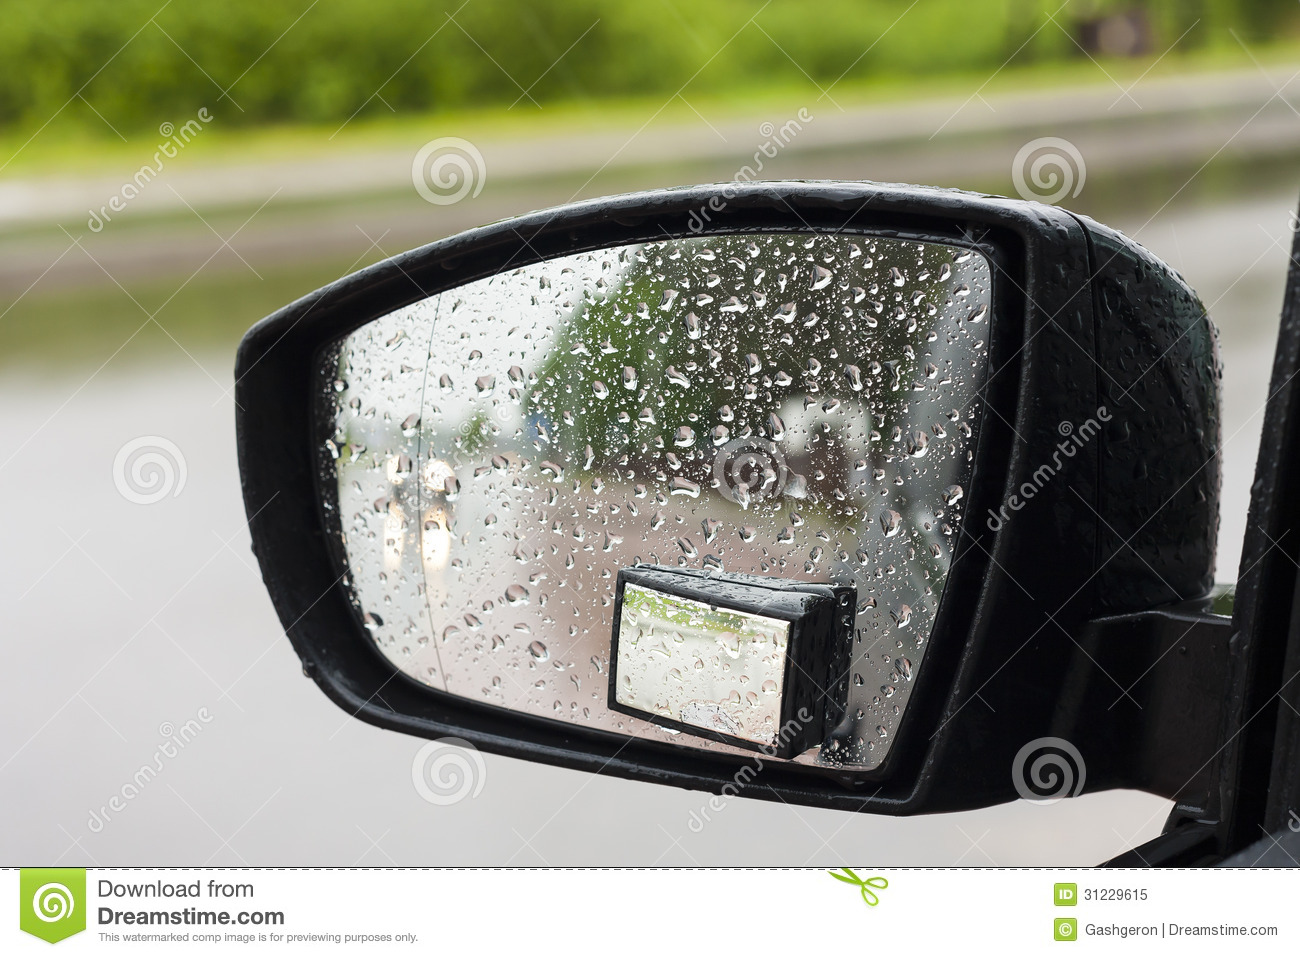 Wet By The Rain The Car Mirror. Royalty Free Stock Photo